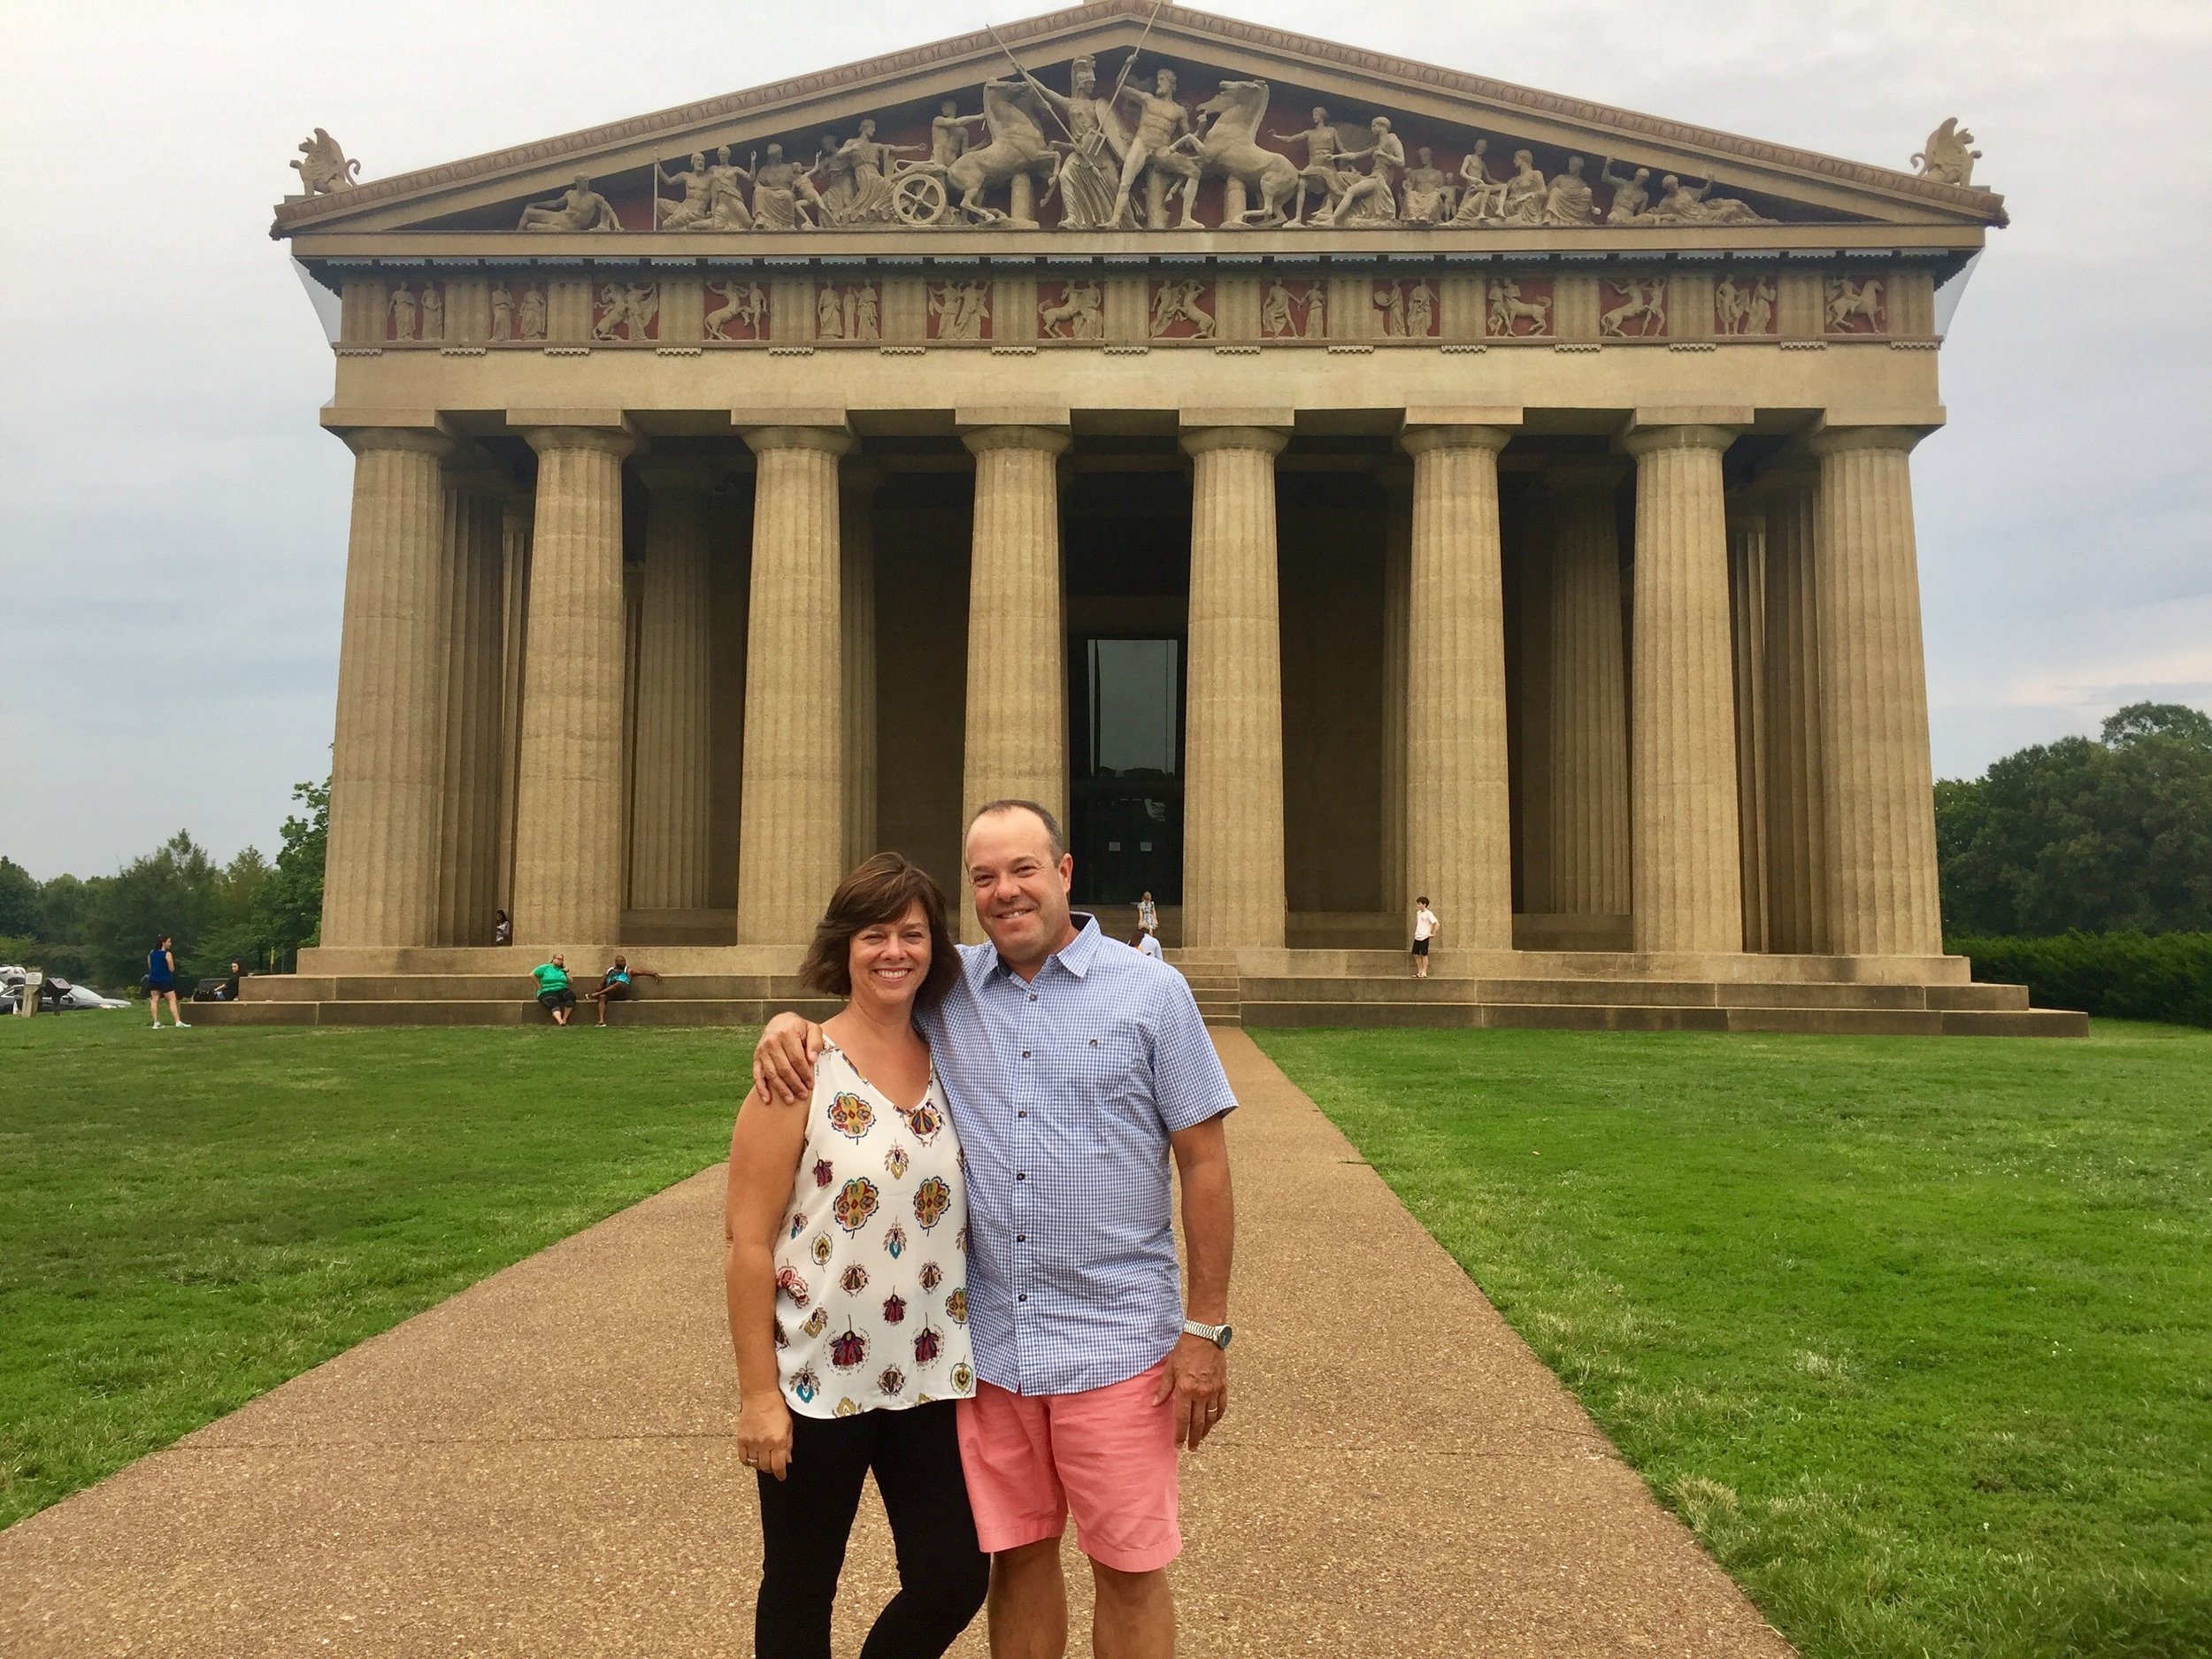 Euro Travel Coach at The Parthenon - in Nashville!